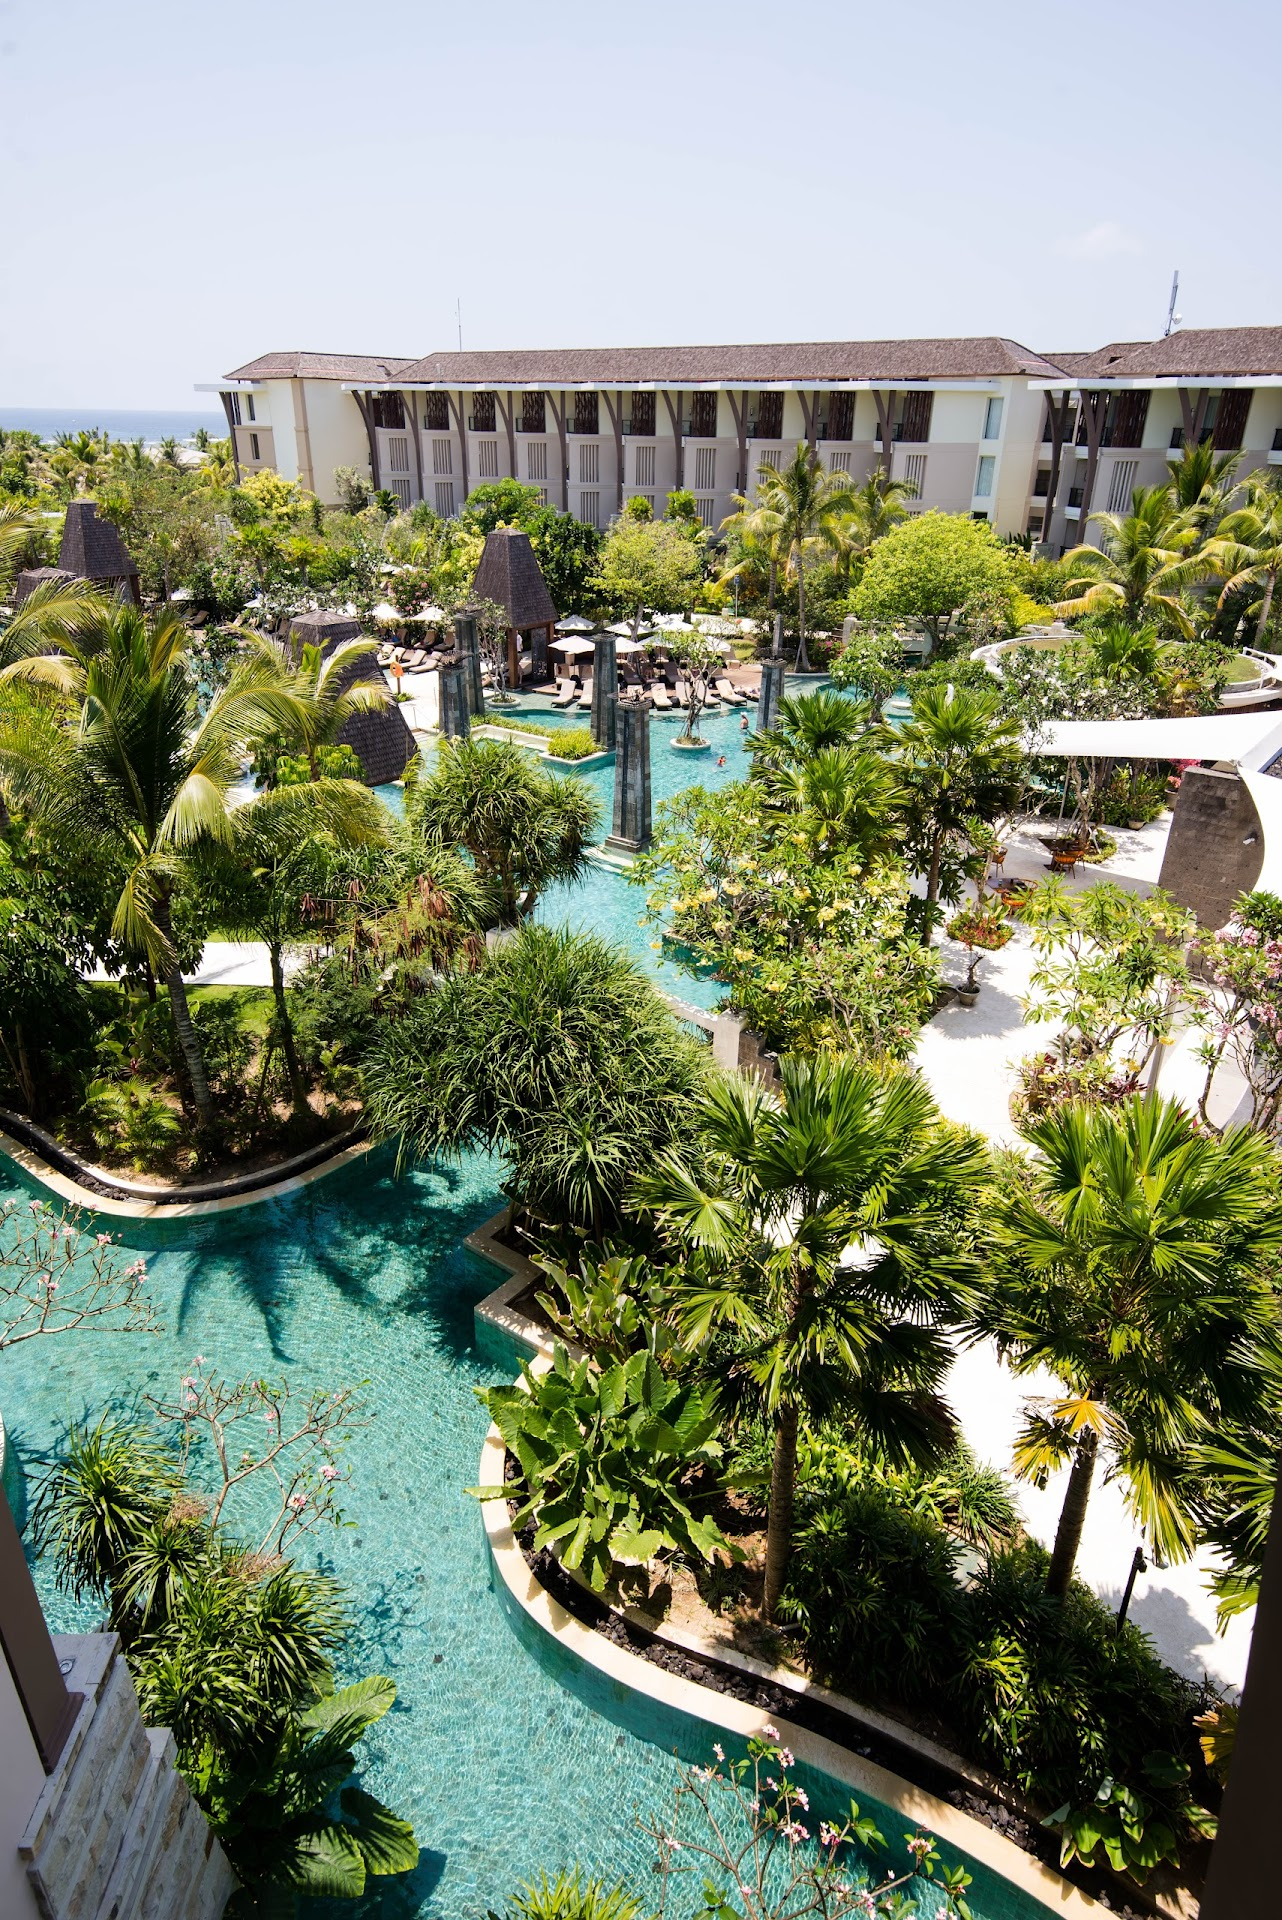 best pools in the world, best hotels in bali, honeymoon resort, bali nusa dua, travel blog, couple travel bloggers, asian korean blogger, japanese, california san francisco bay area travel blogger